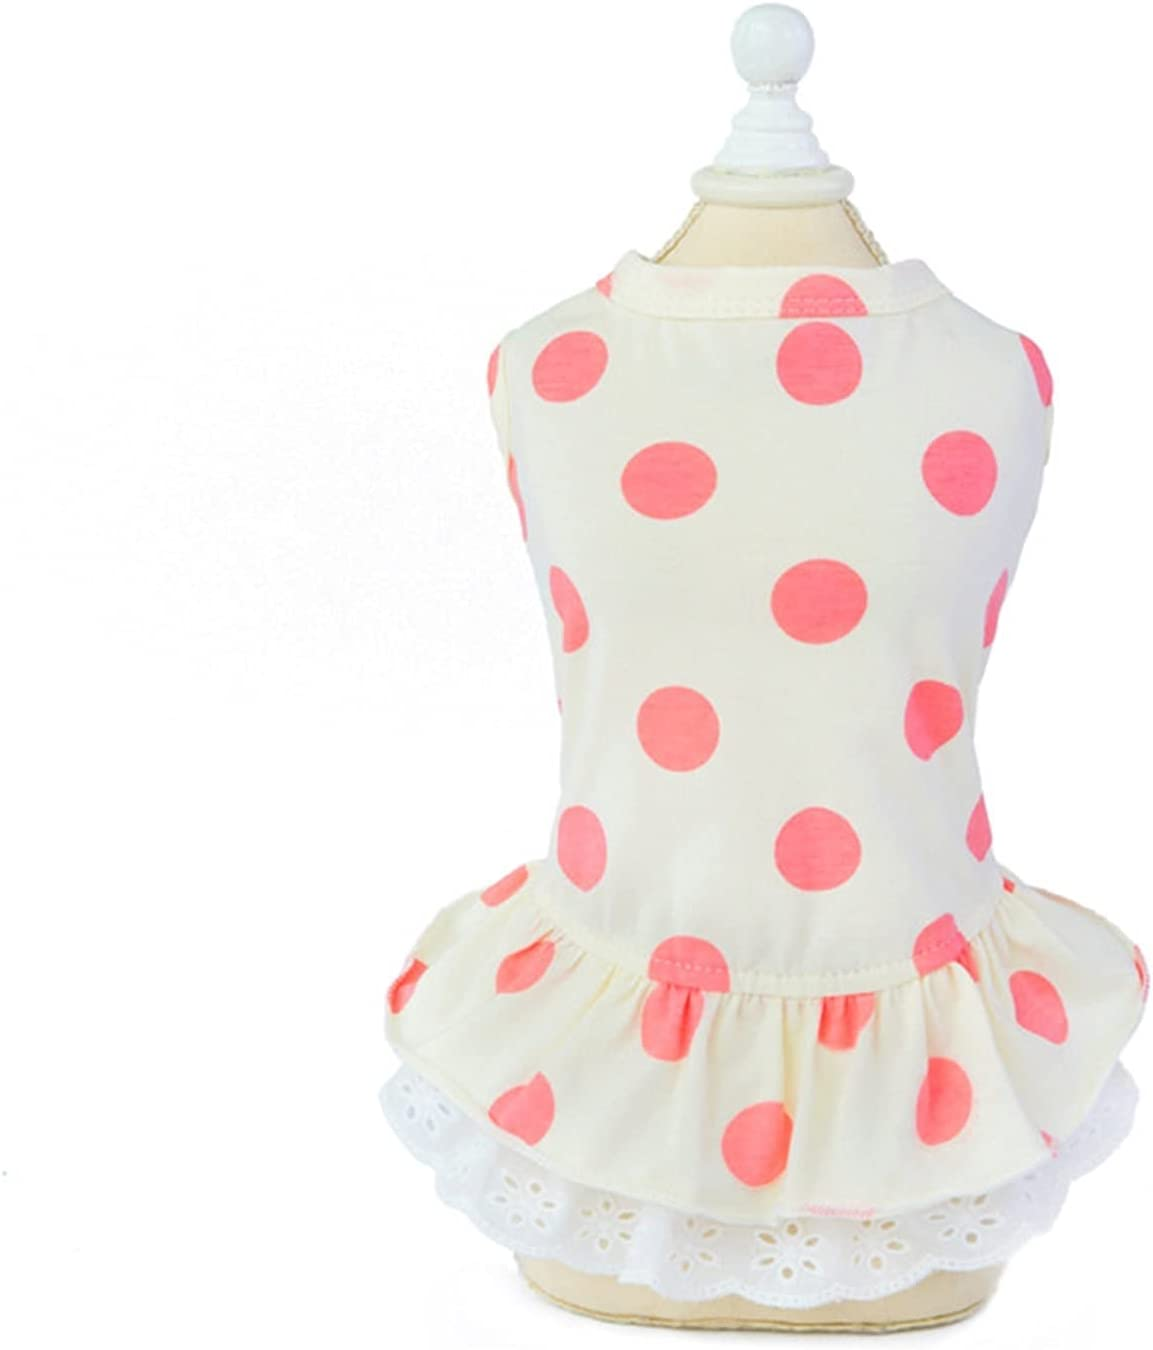 Pet Dog Clothes Bow Cat Summer Dress Princess Dre Ranking Industry No. 1 integrated 1st place Sweer